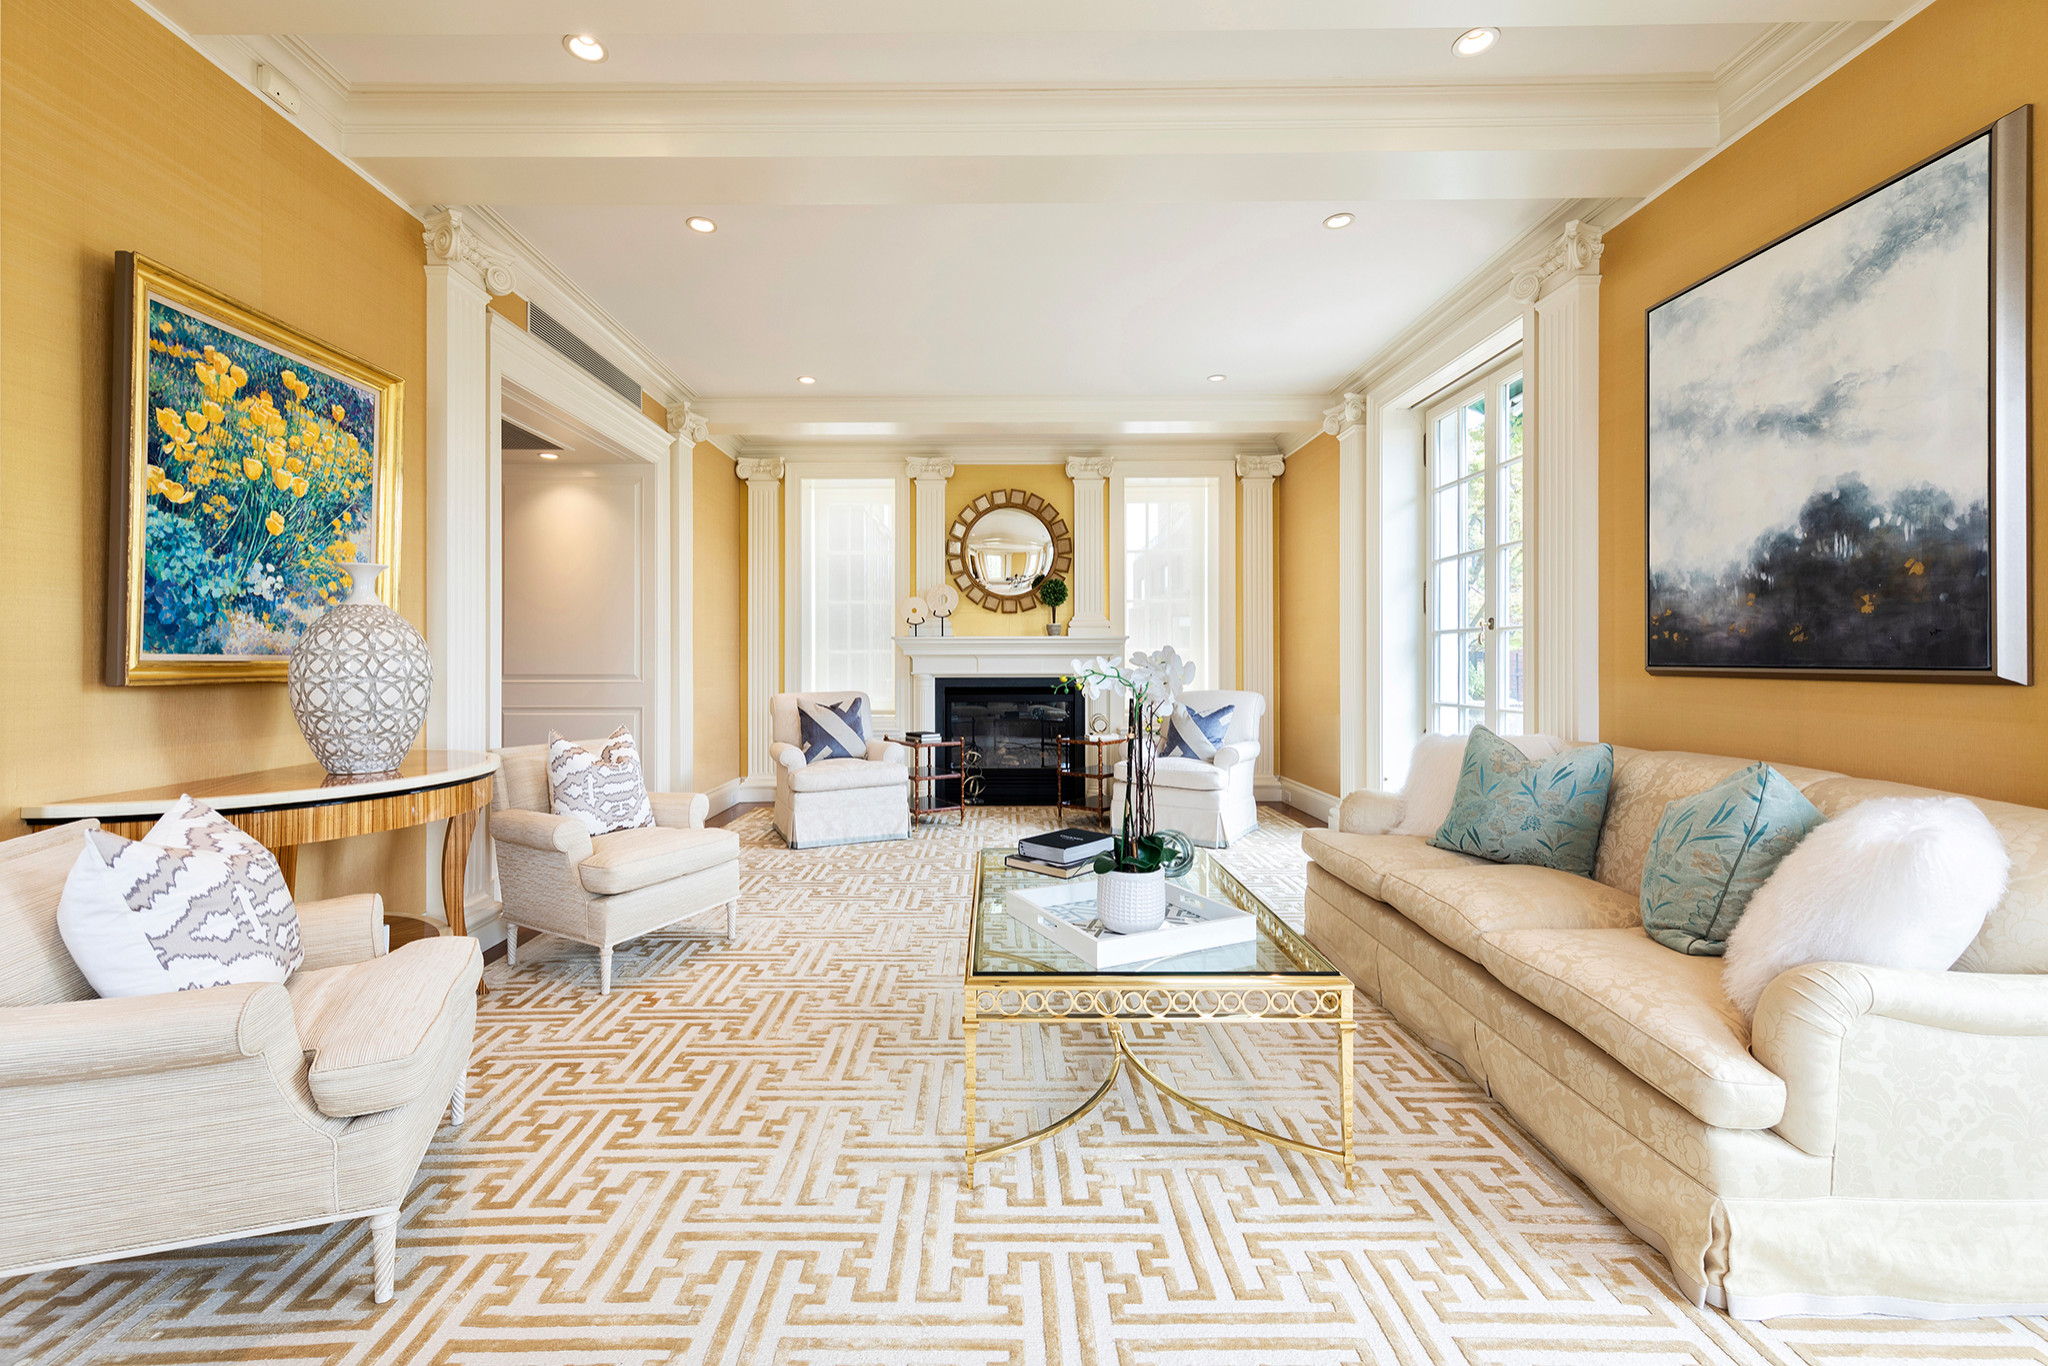 75 Beautiful Living Room With Yellow Walls Pictures Ideas January 2021 Houzz